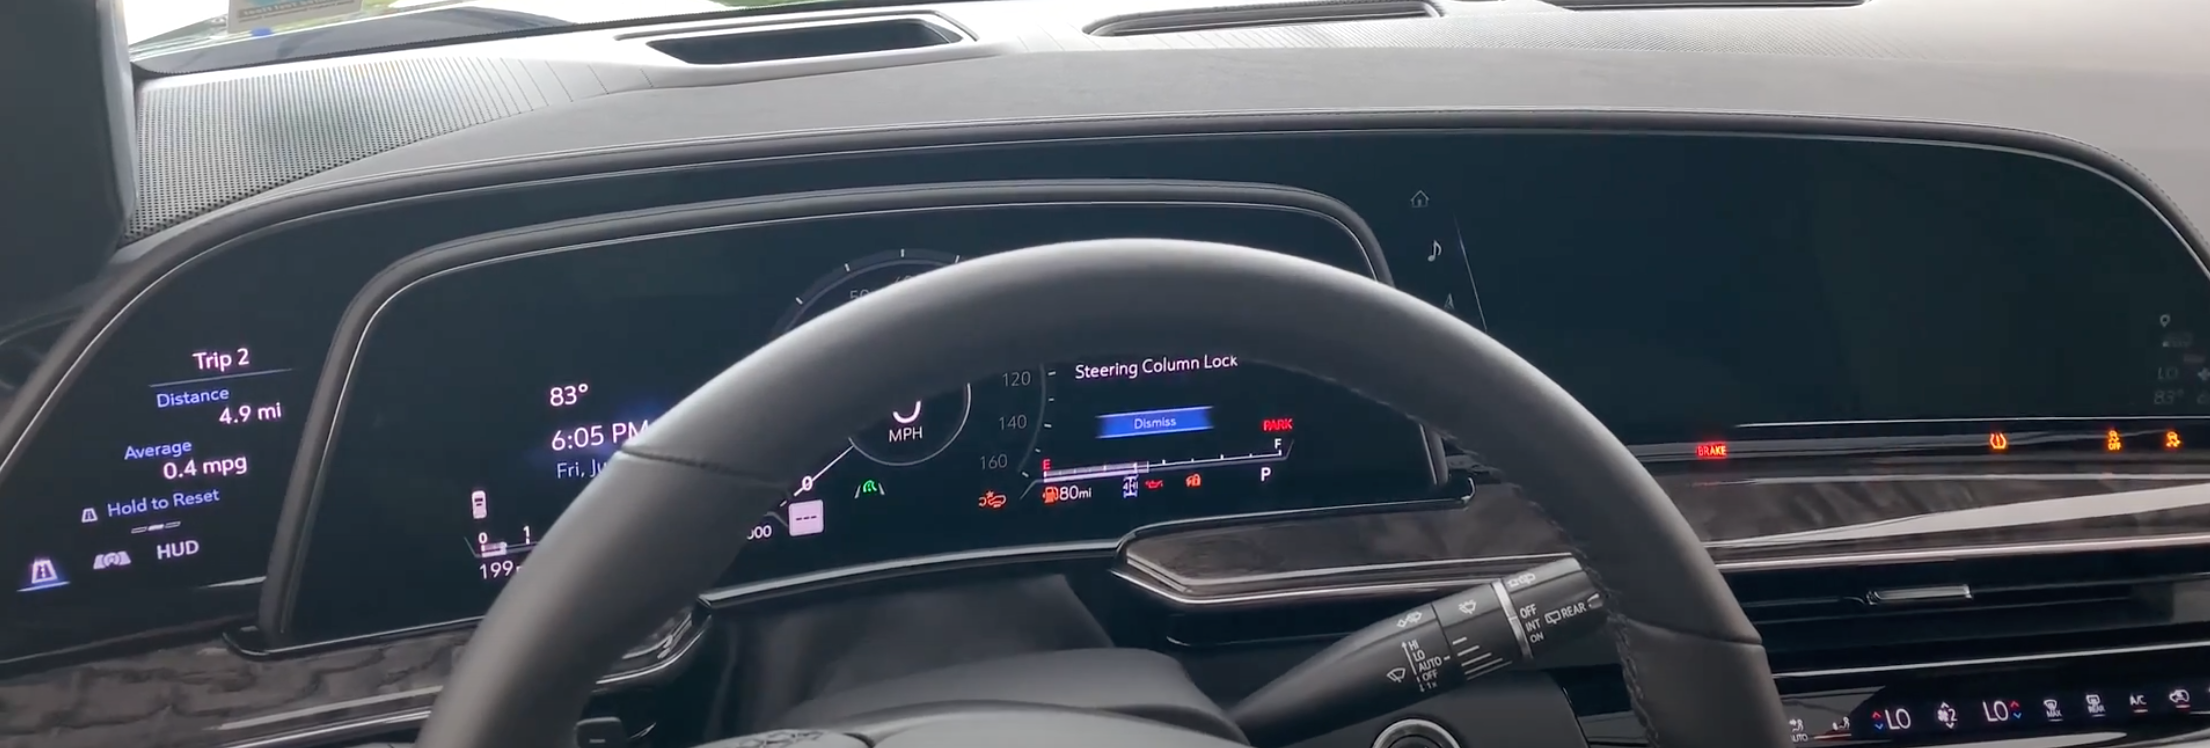 Touch surfaces of a car including the infotainment system and gauge cluster